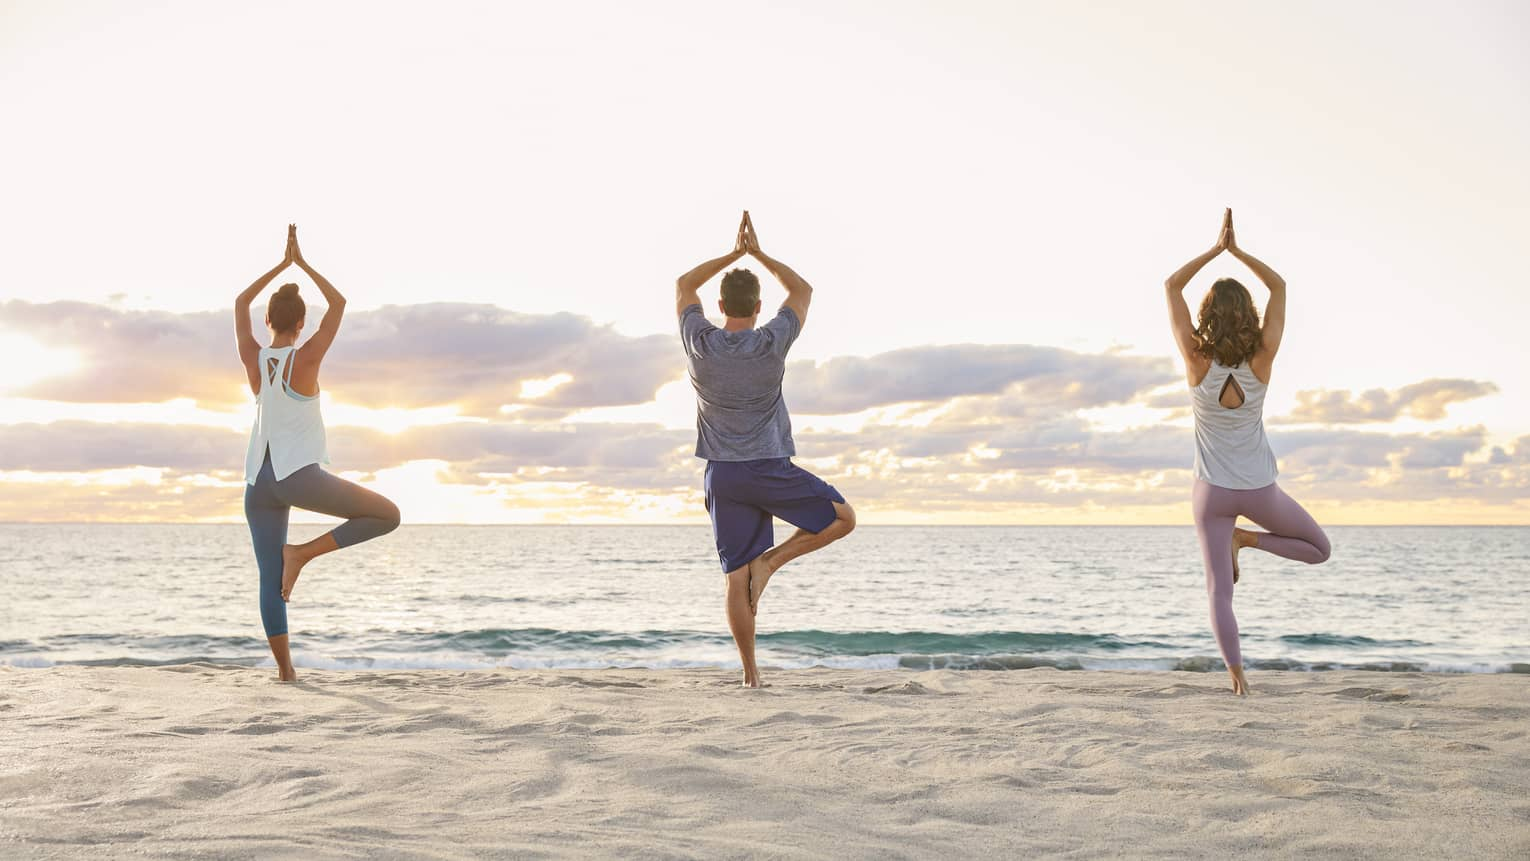 Backs of three people standing in yoga pose on sand beach at sunrise